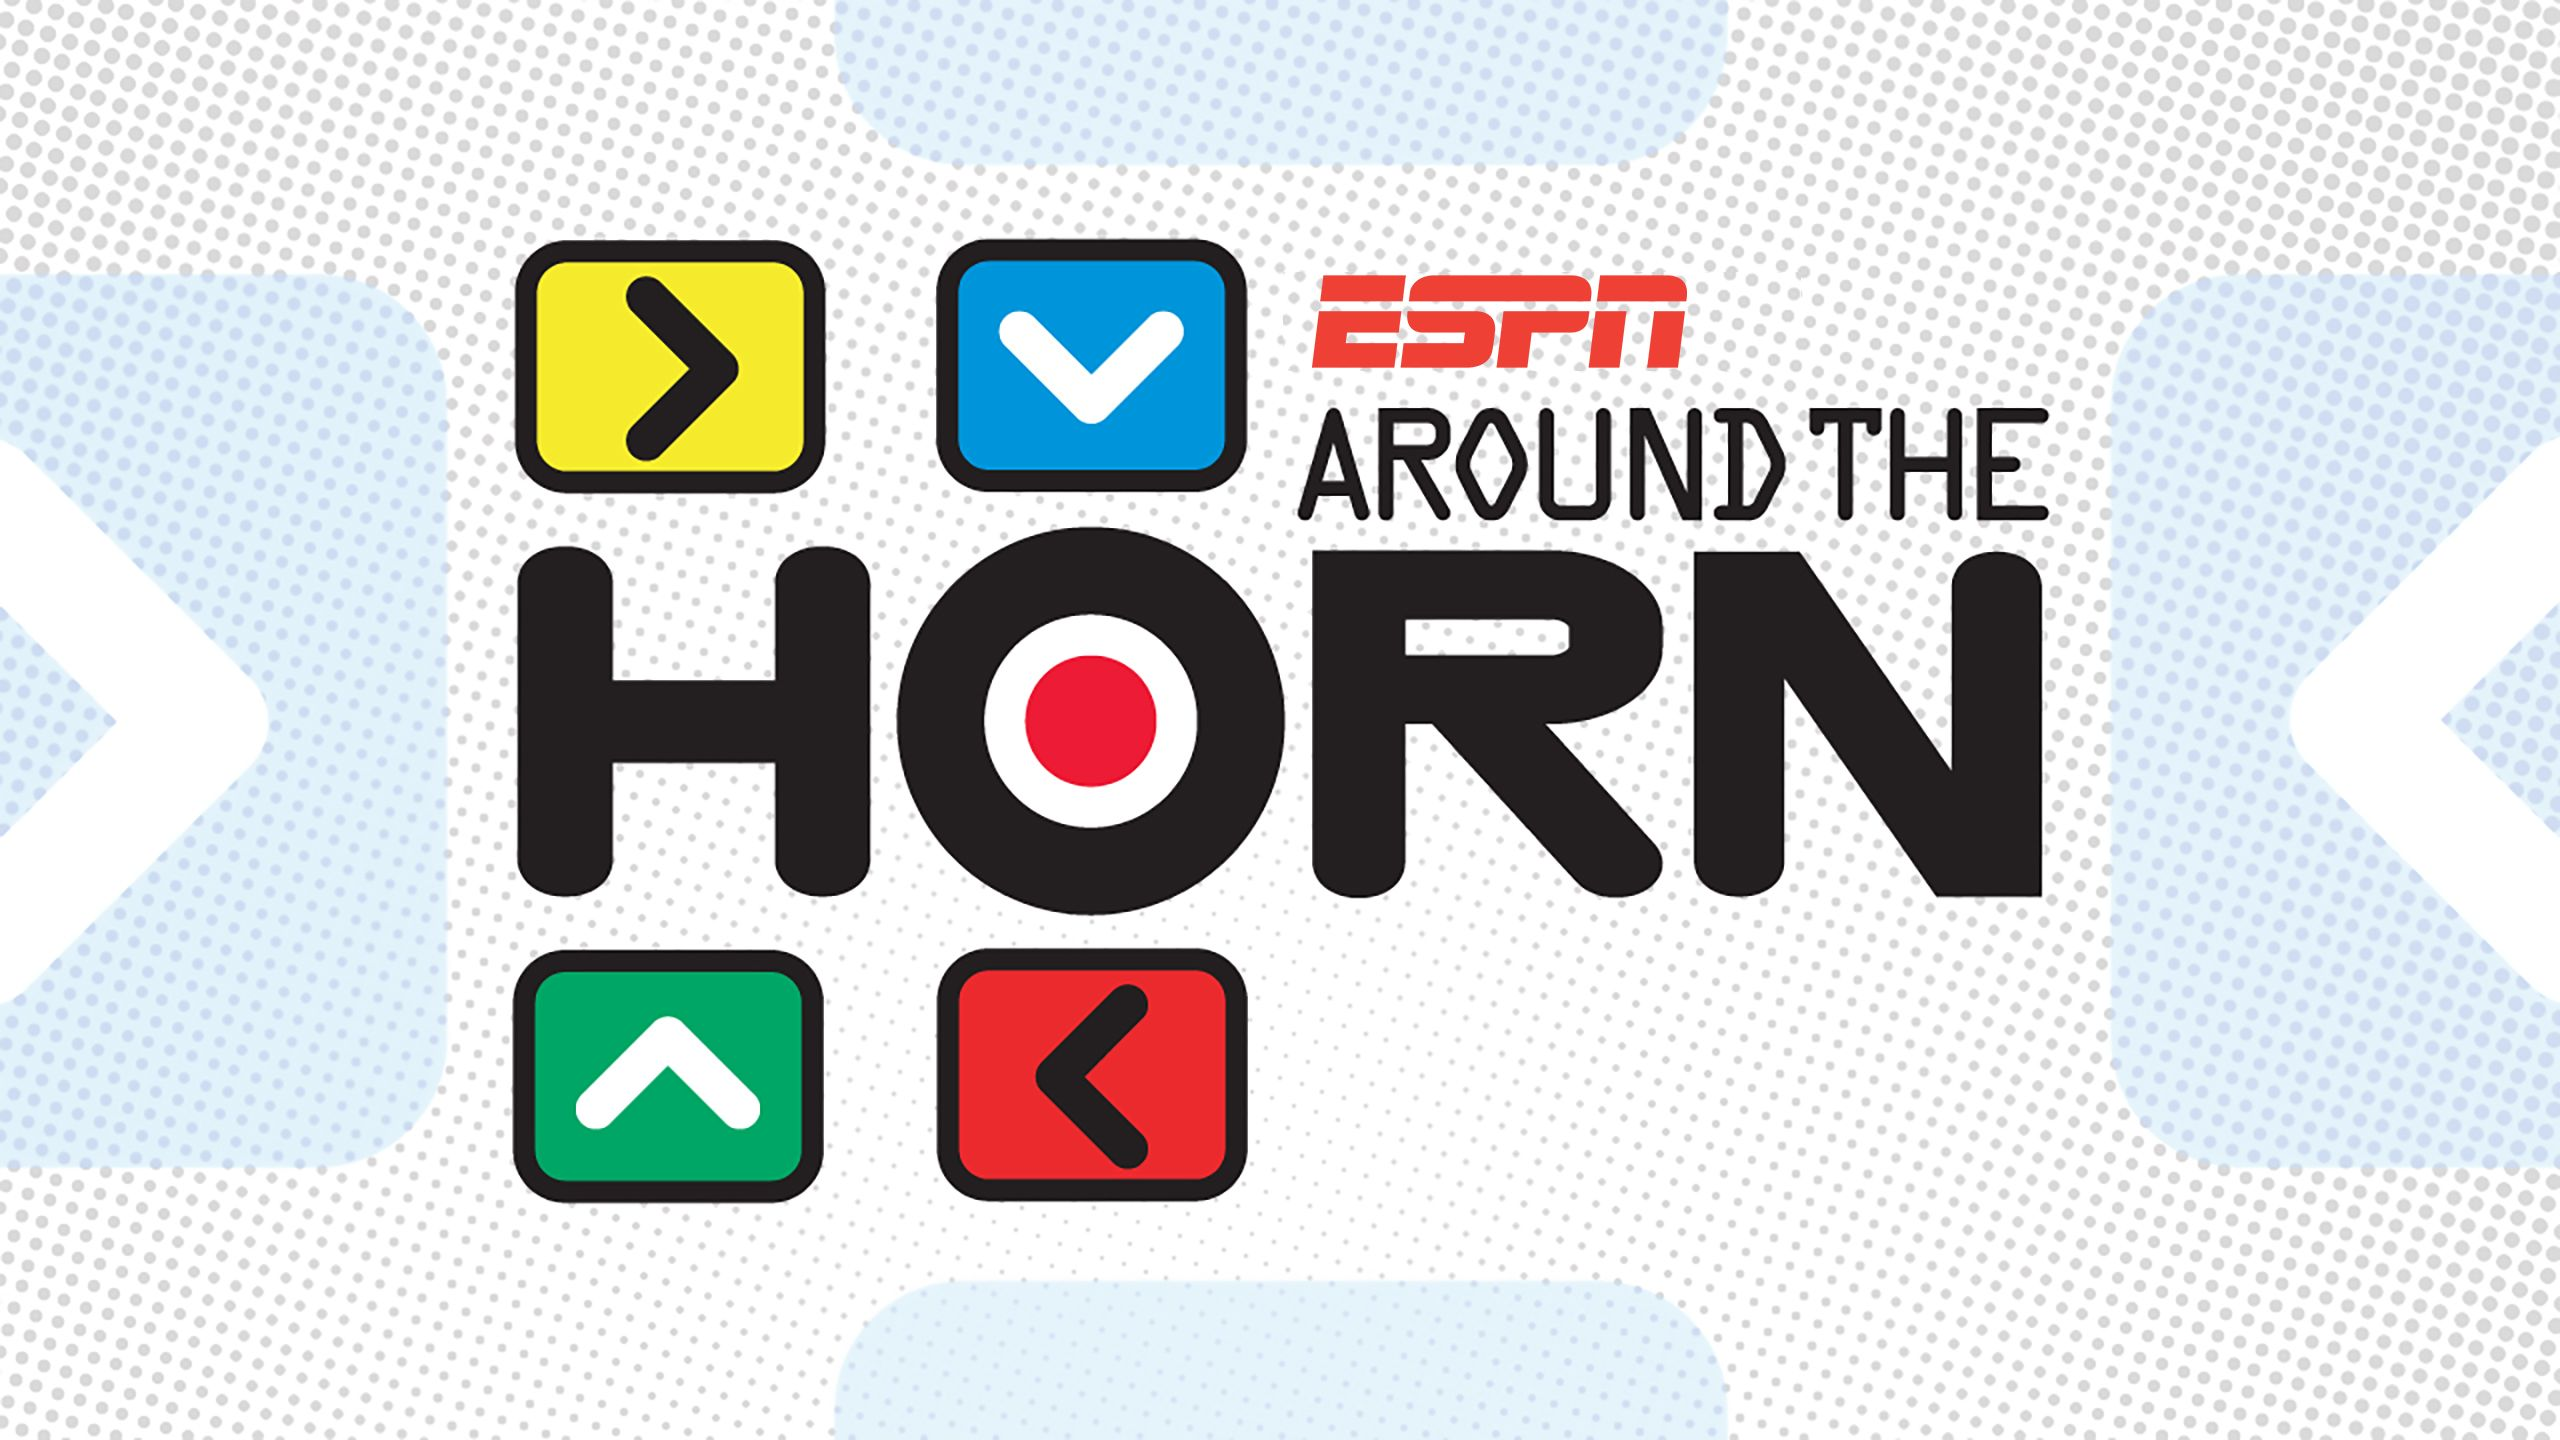 Wed, 1/17 - Around The Horn